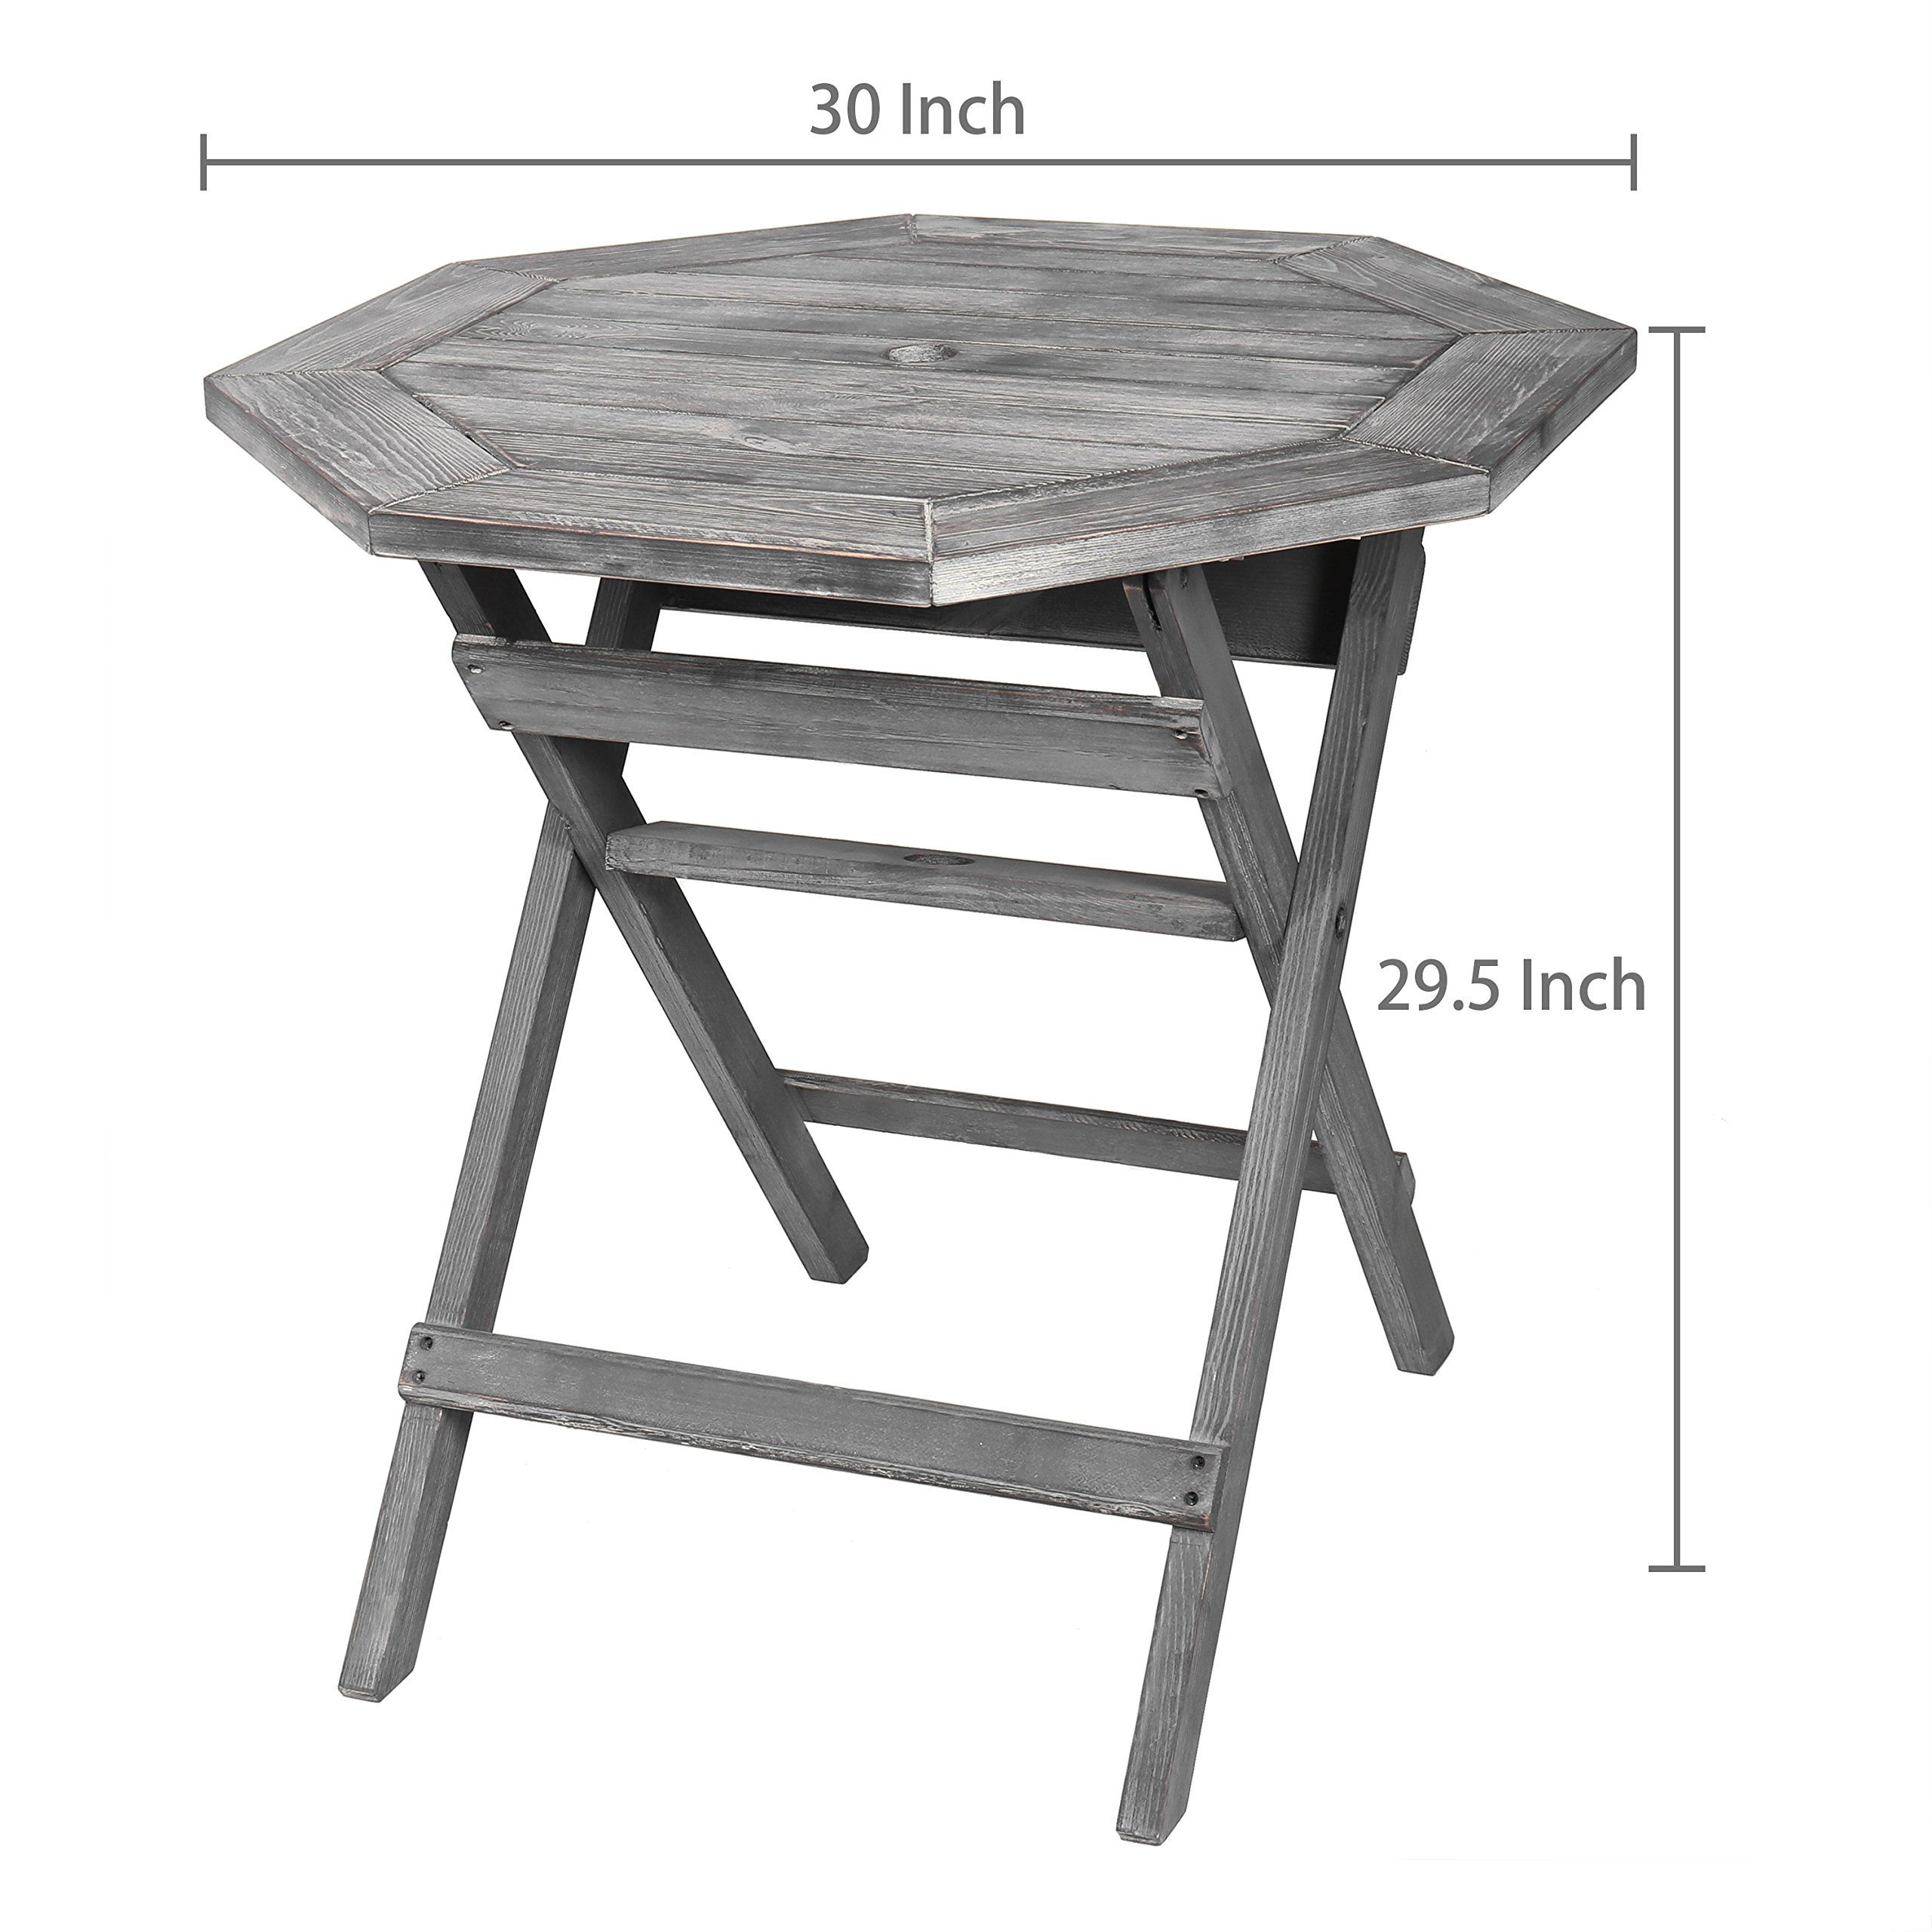 rustic barnwood gray pine wood folding octagonal patio accent bistro umbrella table with hole tops and legs commercial outdoor furniture tall lamp unique drawer pulls side tables